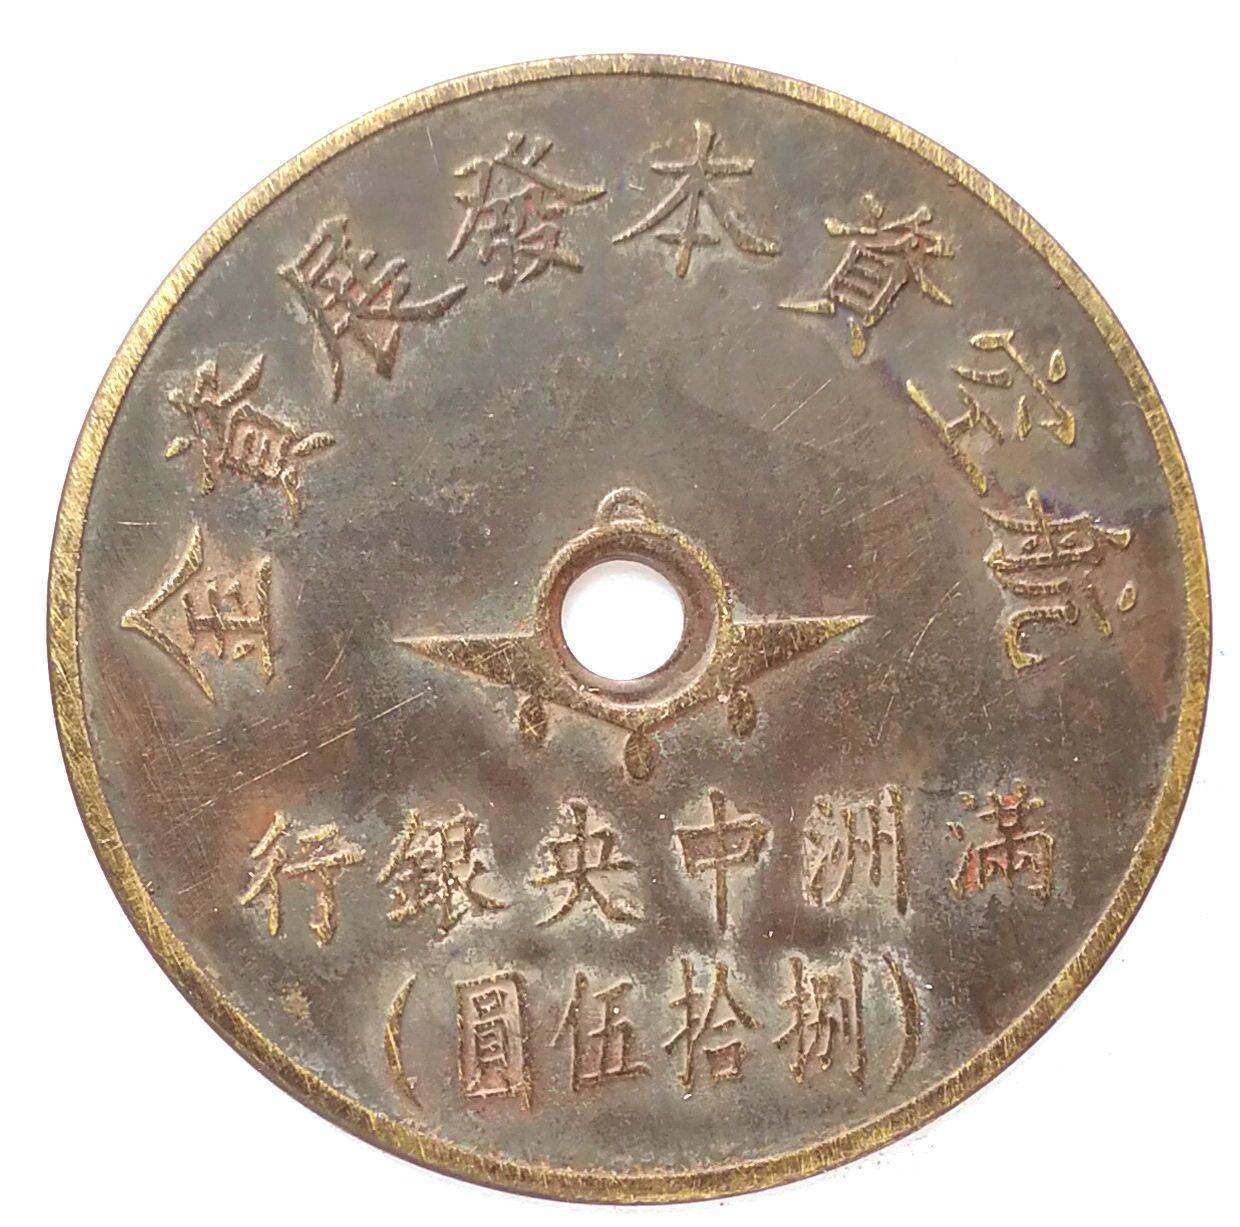 BT525, Manchukuo Aviation Development Fund, Central Bank 85 Yen Token, 1945